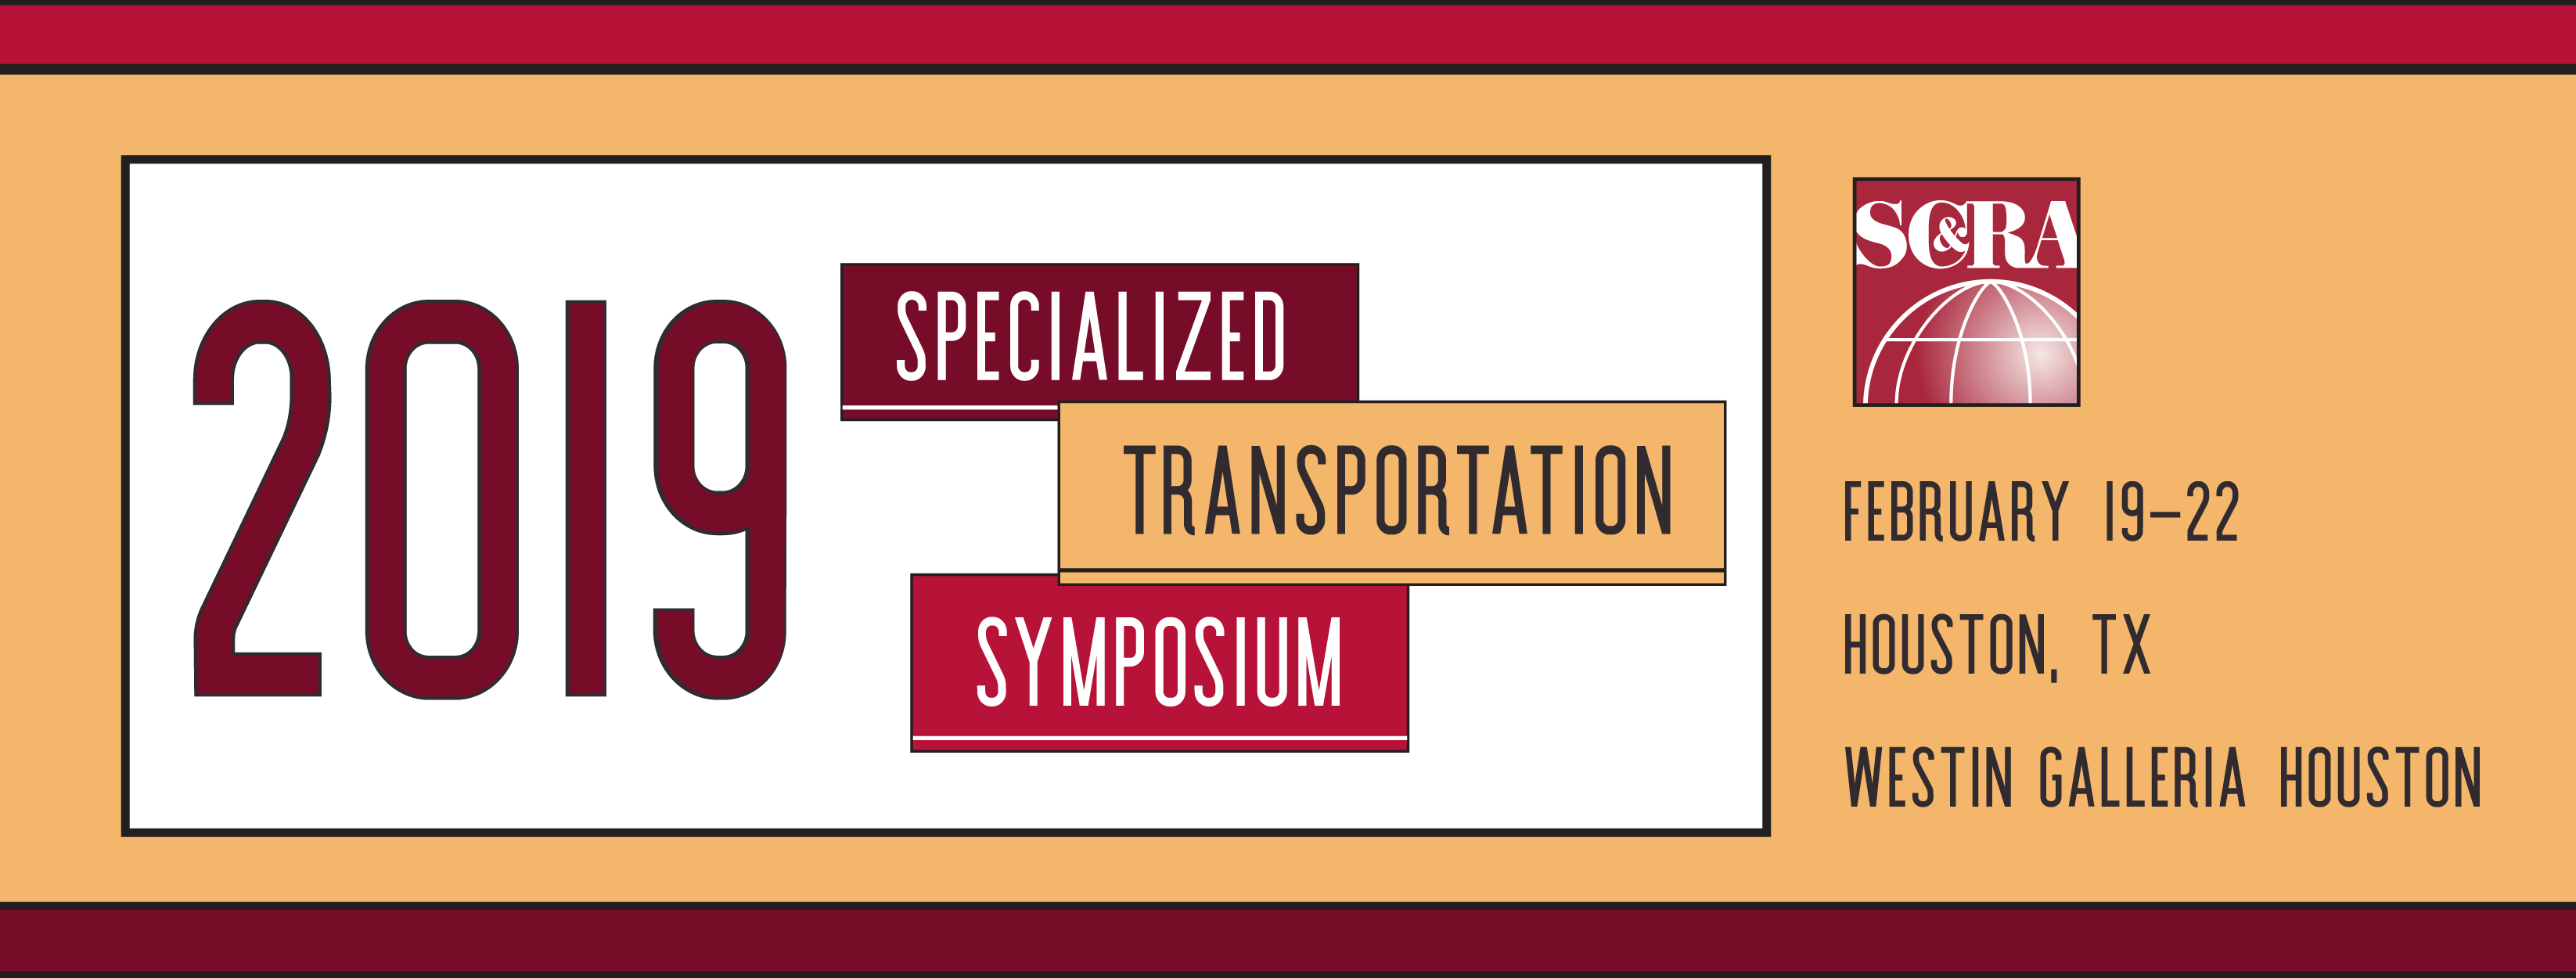 2019 Specialized Transportation Symposium